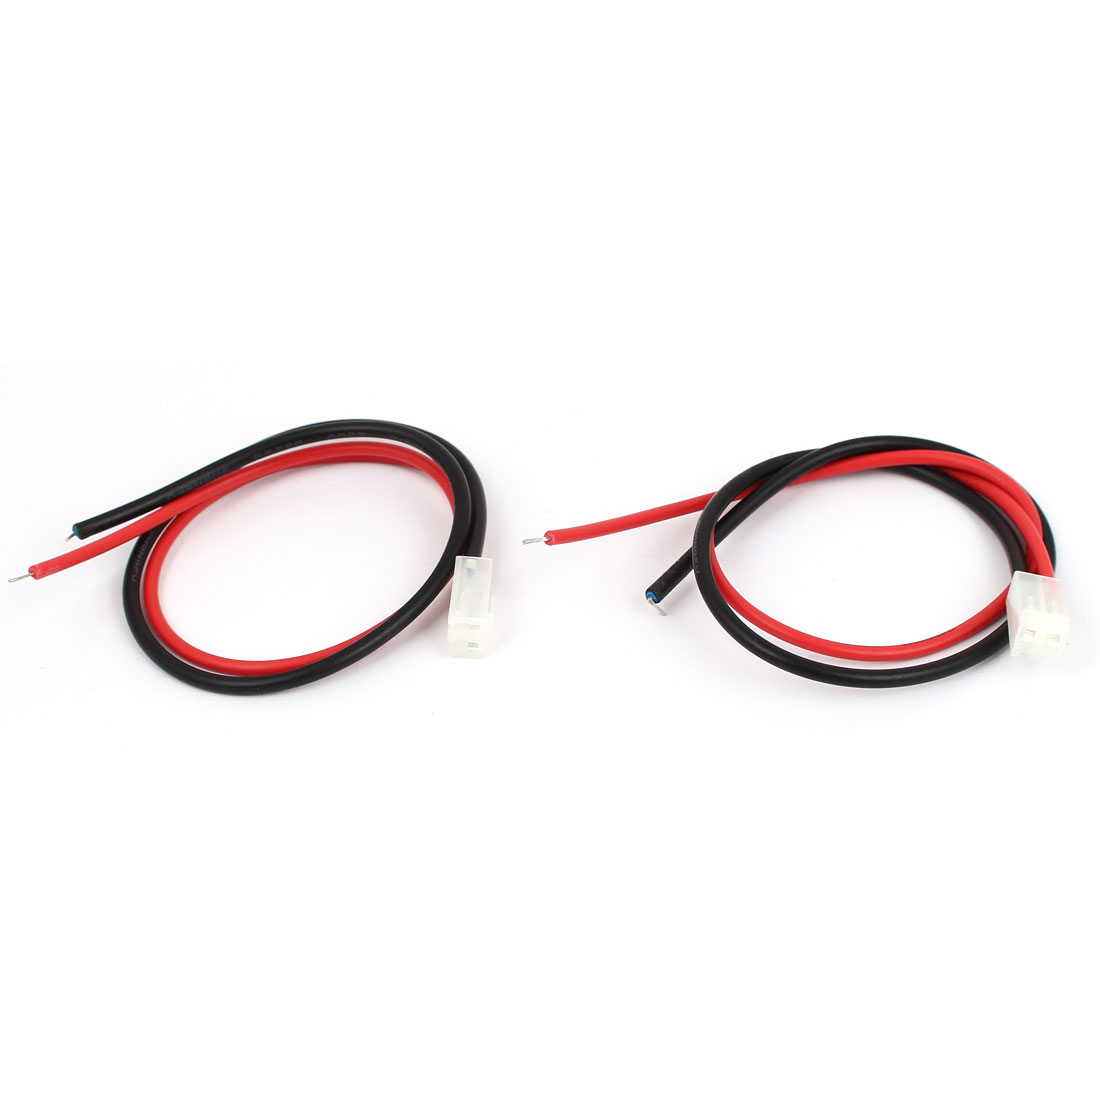 VH-2P 3.96mm Pitch Female Connector pole Header Wire Line 300mm 2pcs